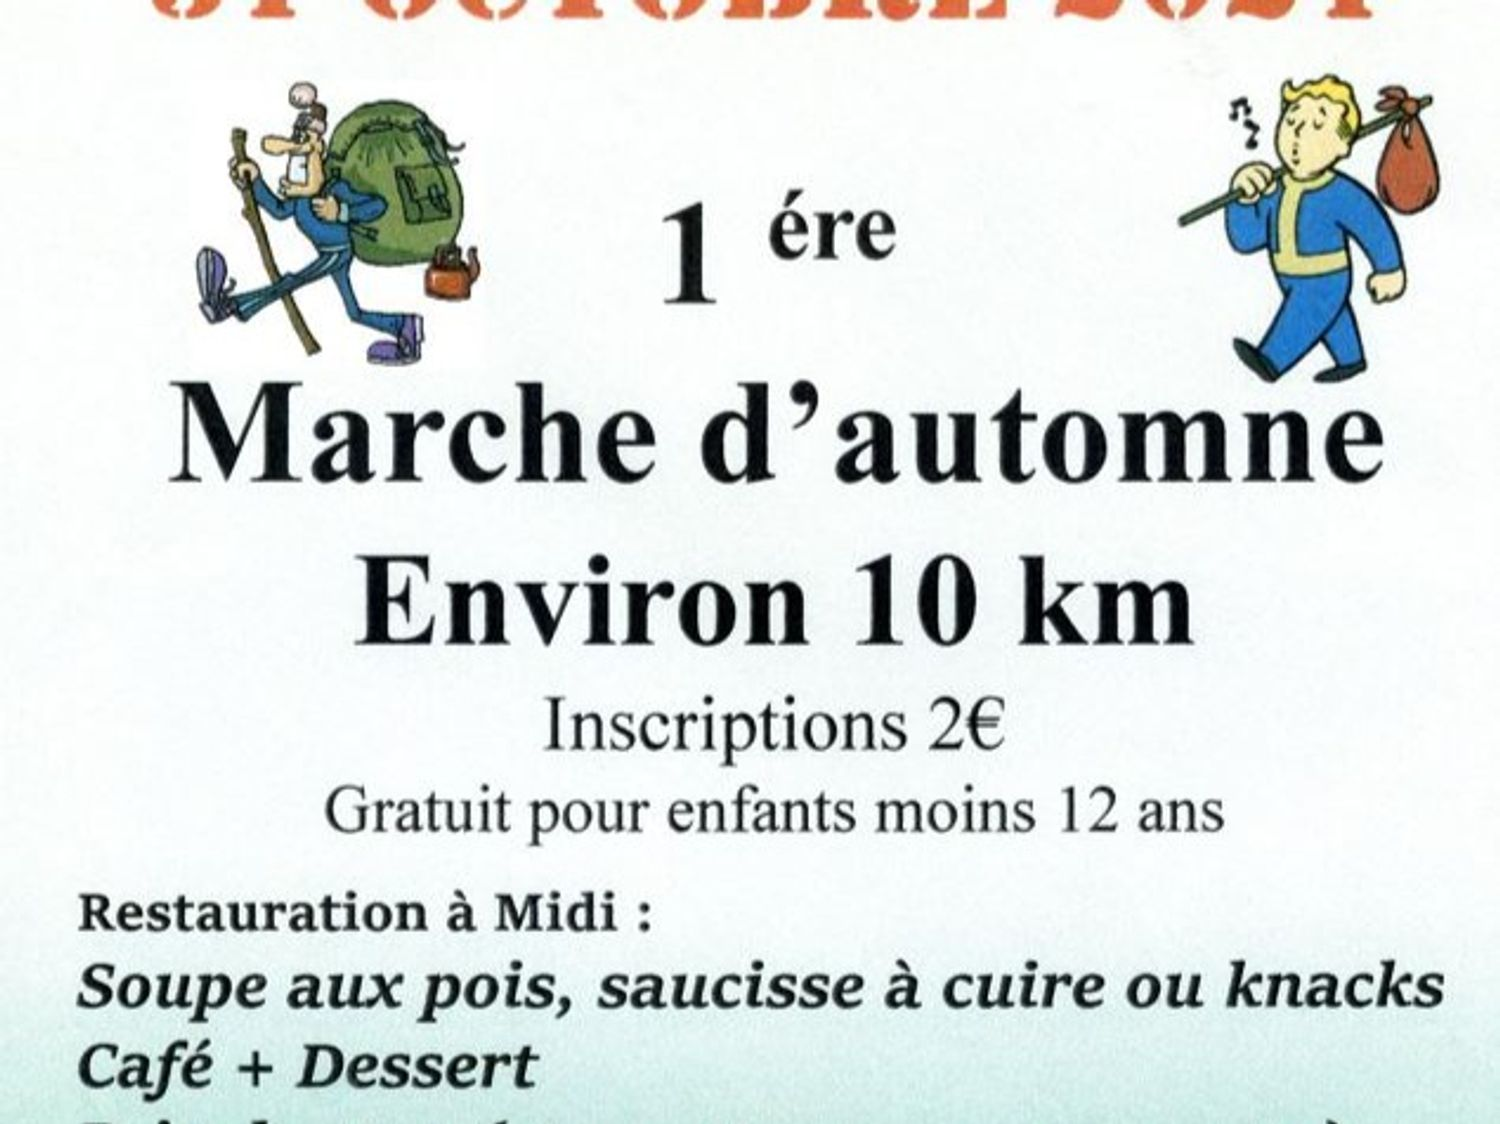 MARCHE D'AUTOMNE LE 31 OCTOBRE A WEITERSWILLER